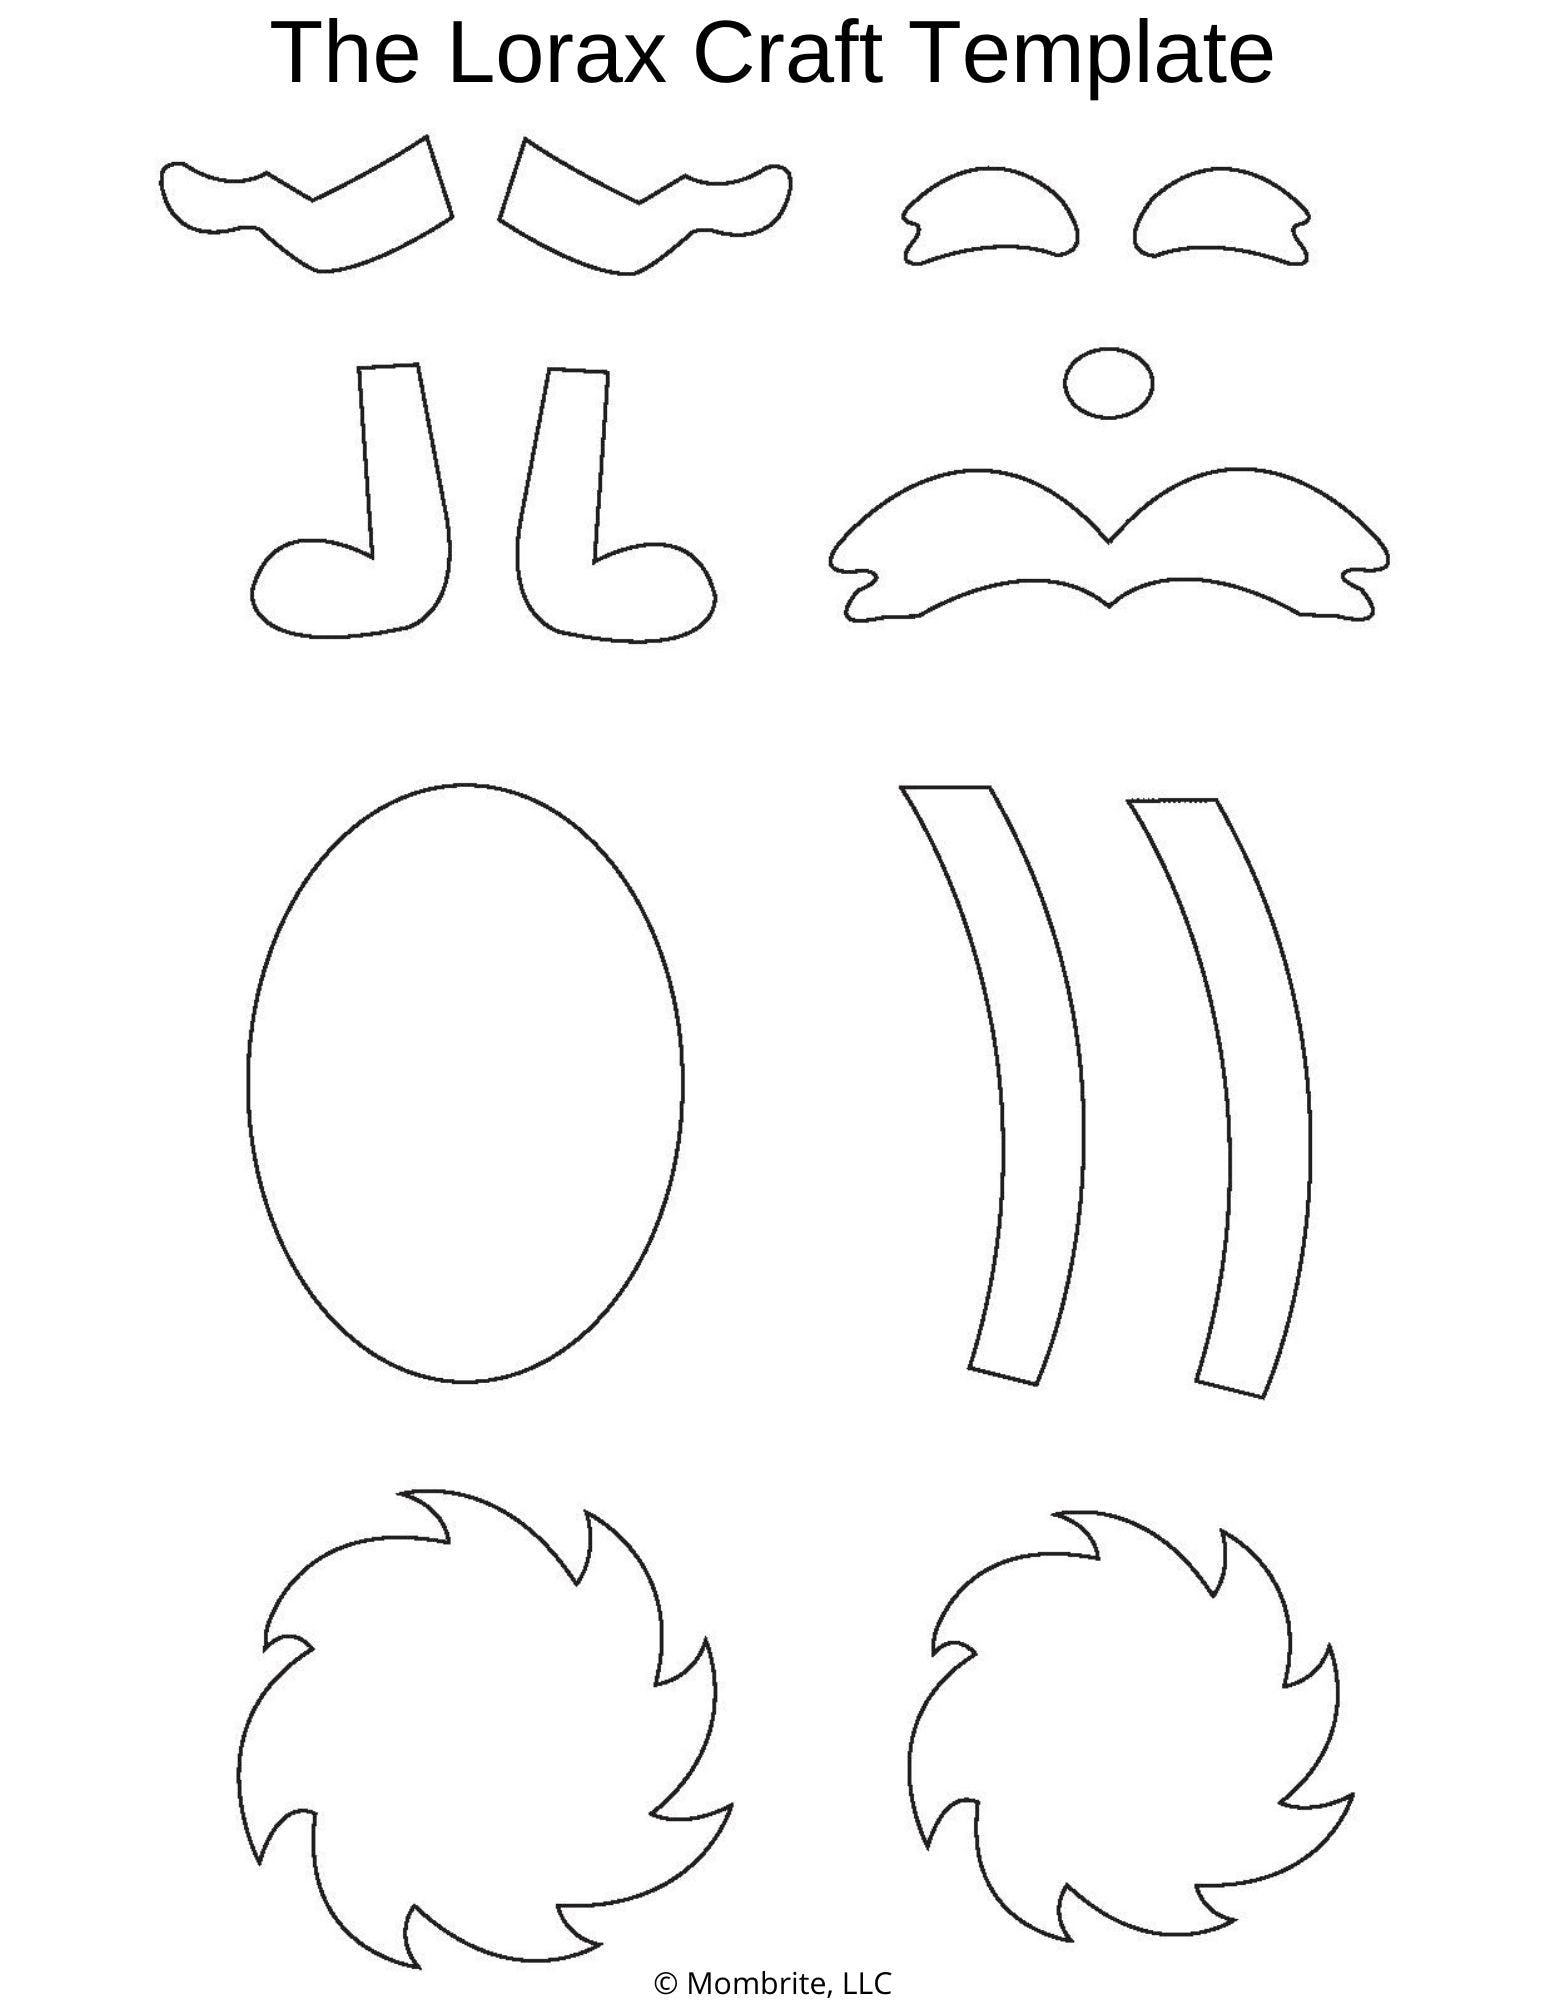 Lorax Mustache And Eyebrows : lorax, mustache, eyebrows, Lorax, Seuss, Craft, [Free, Template], Mombrite